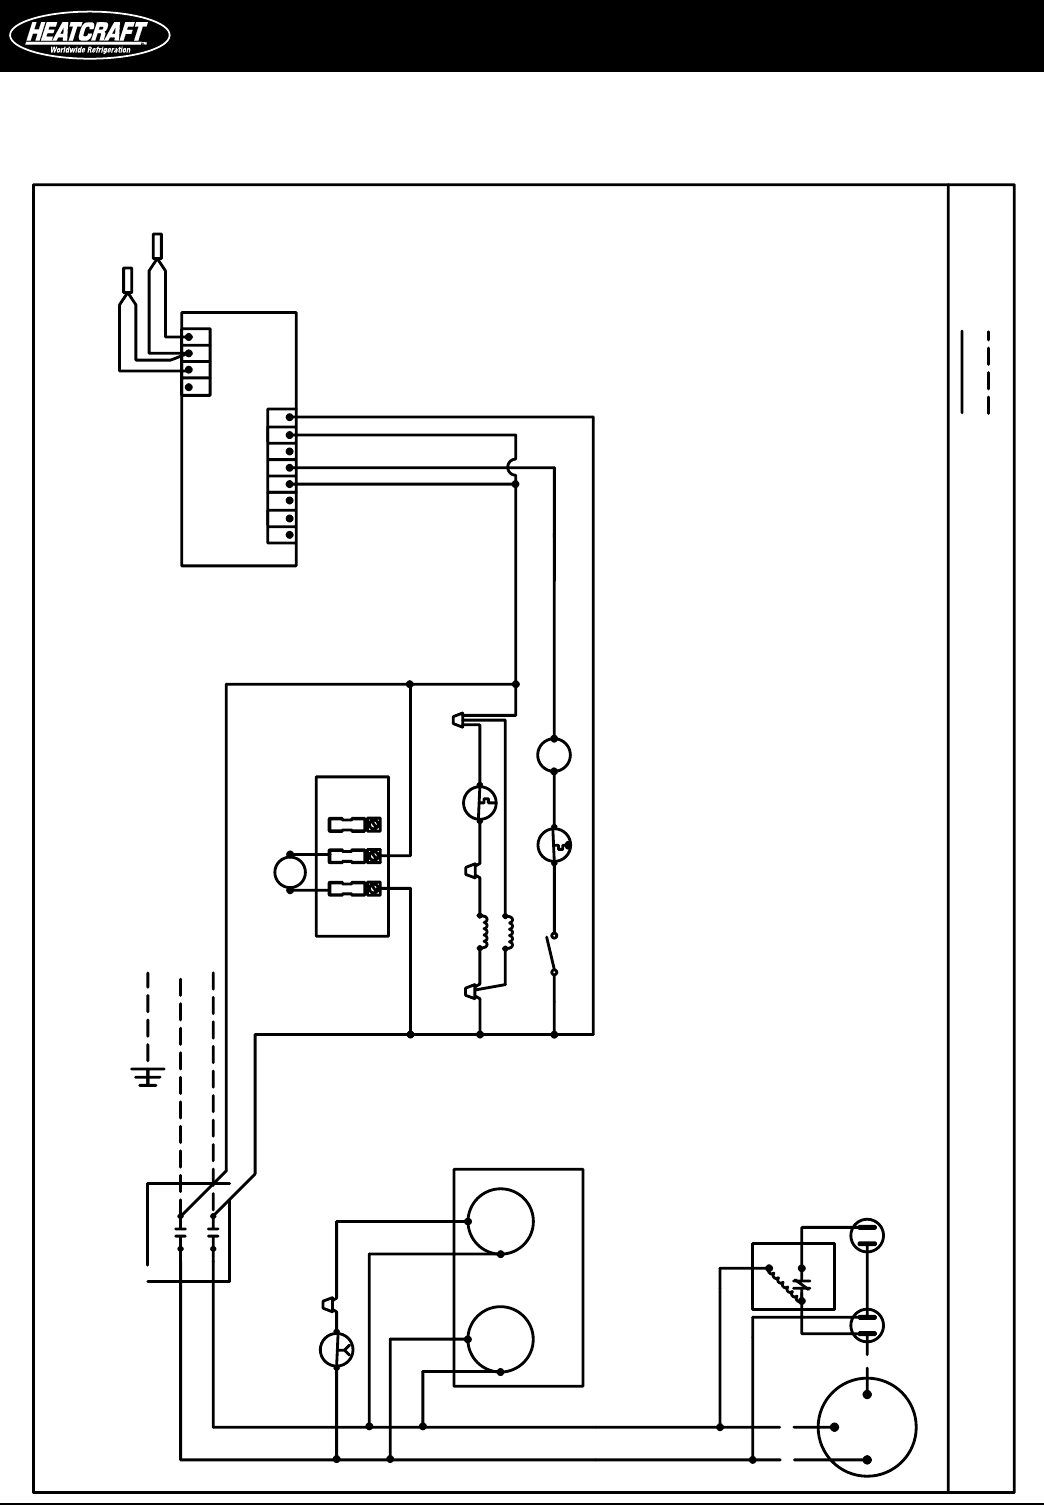 55587f91 c859 def4 0921 730c5709c050 bg10 page 16 of heatcraft refrigeration products refrigerator pro3 user heatcraft wiring diagram at webbmarketing.co